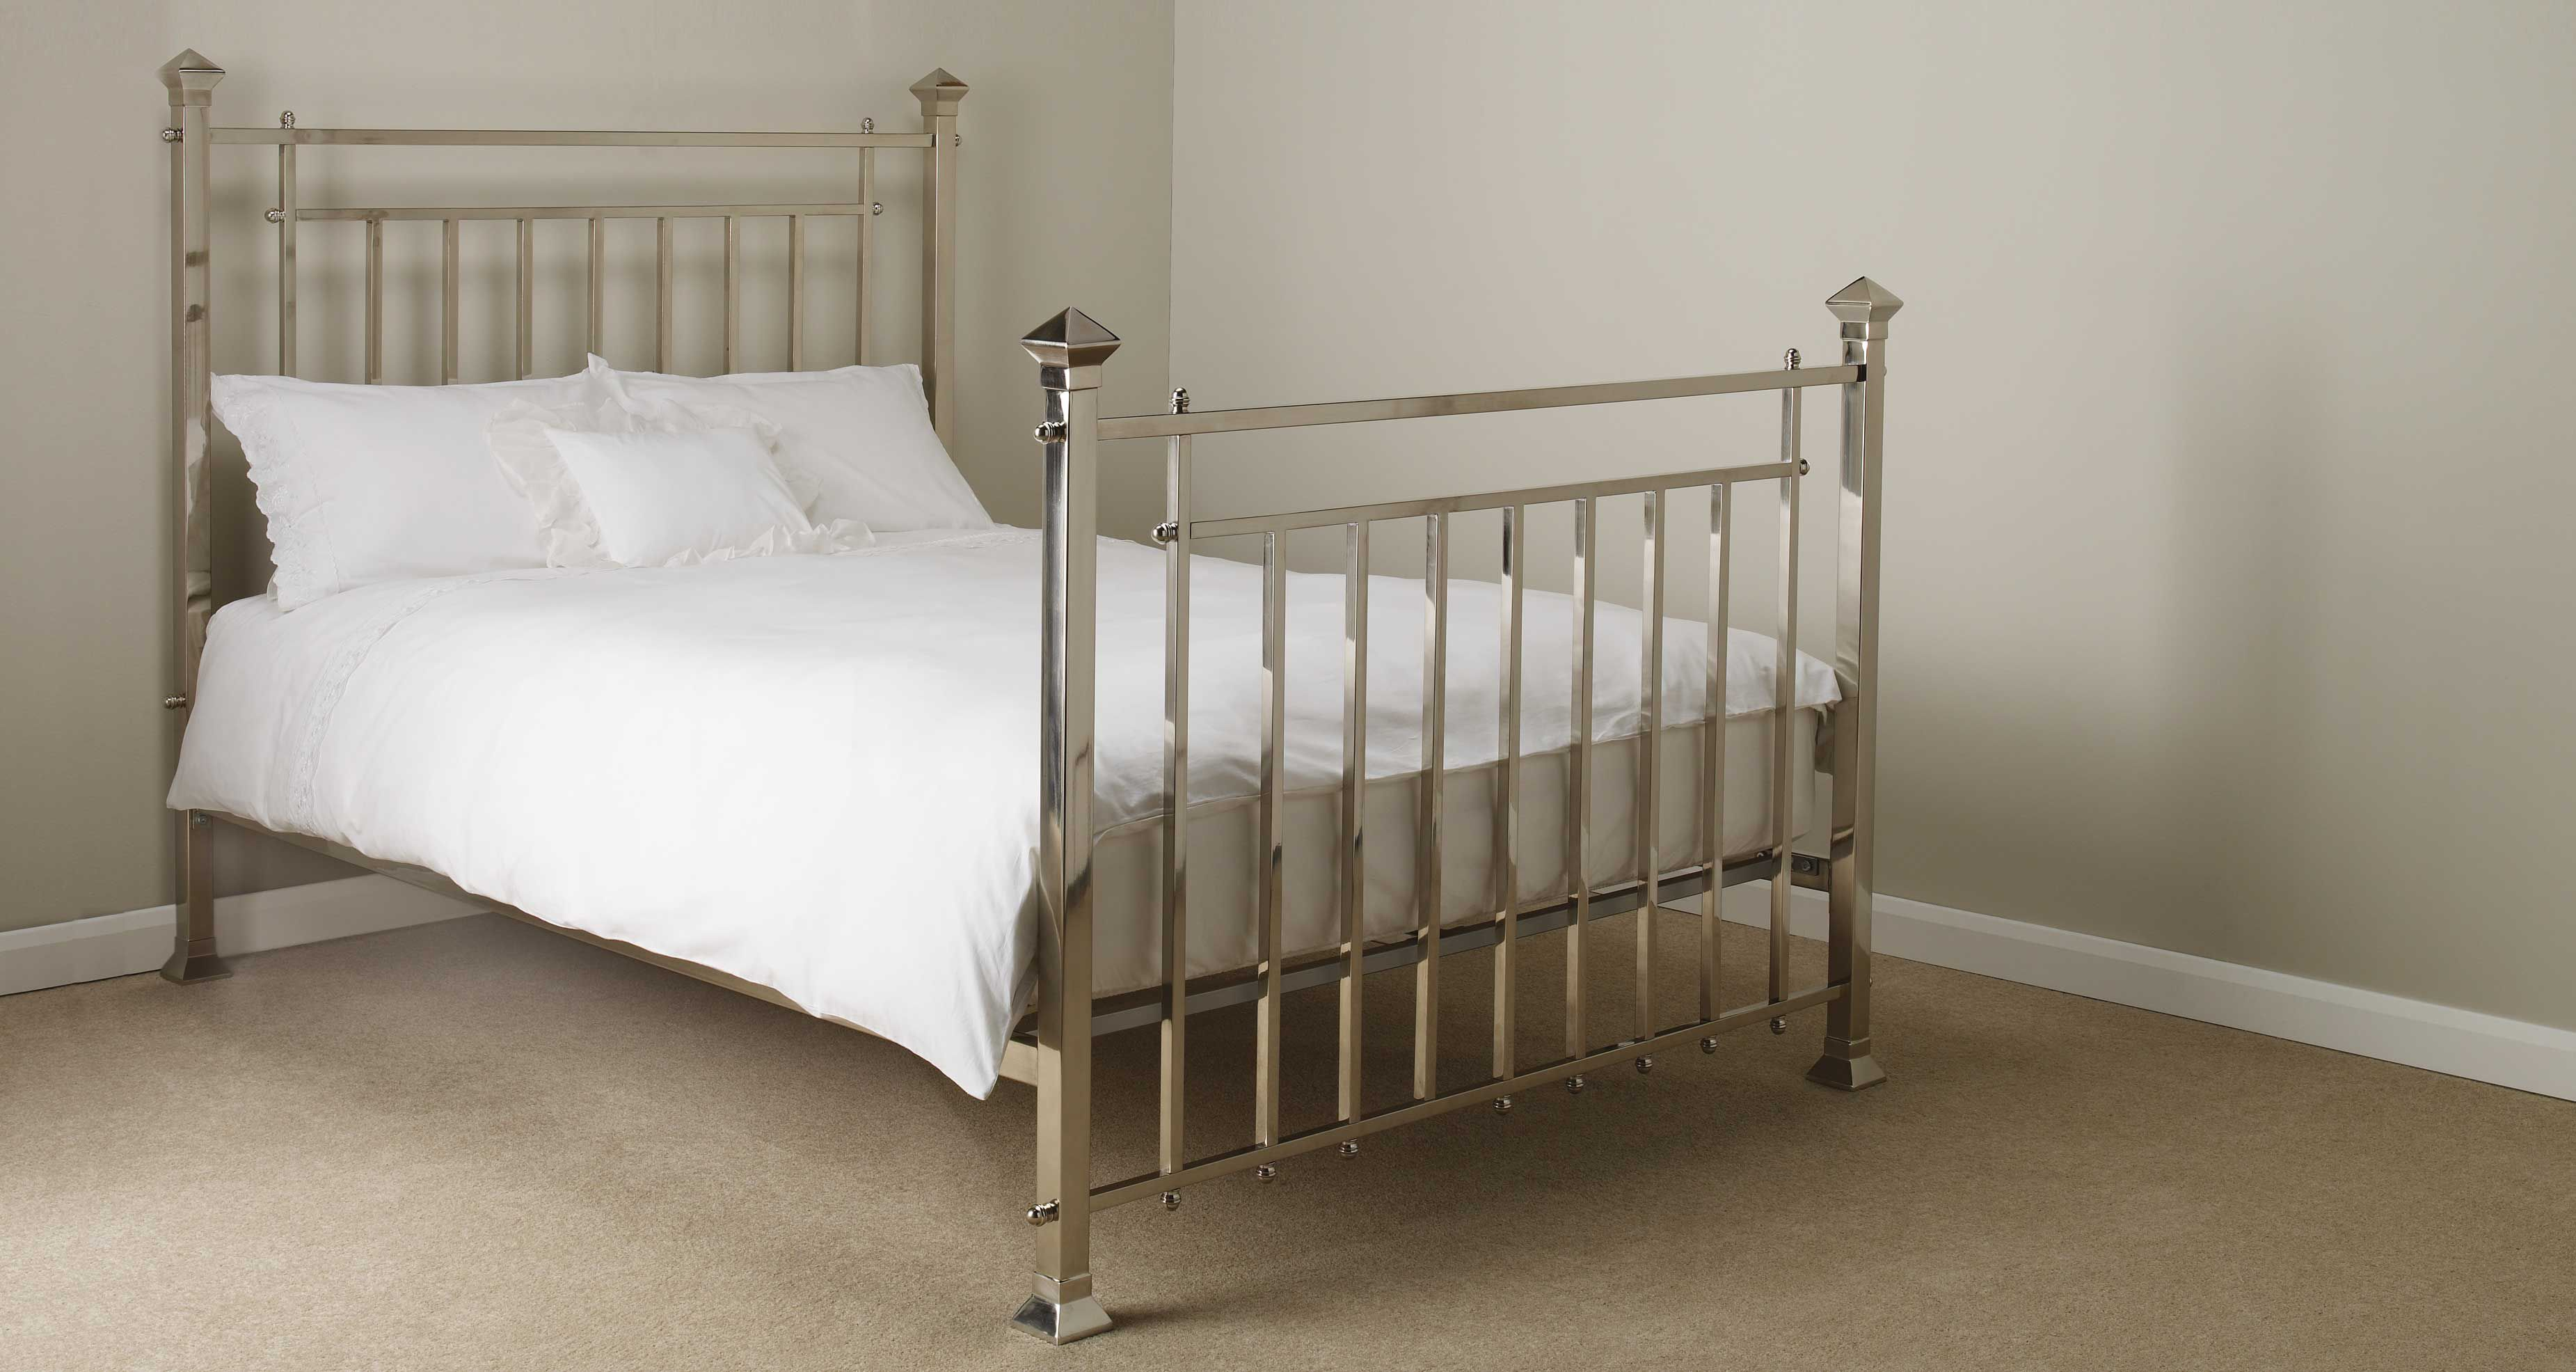 Bedsteads reviews, cheap prices, uk delivery, compare prices